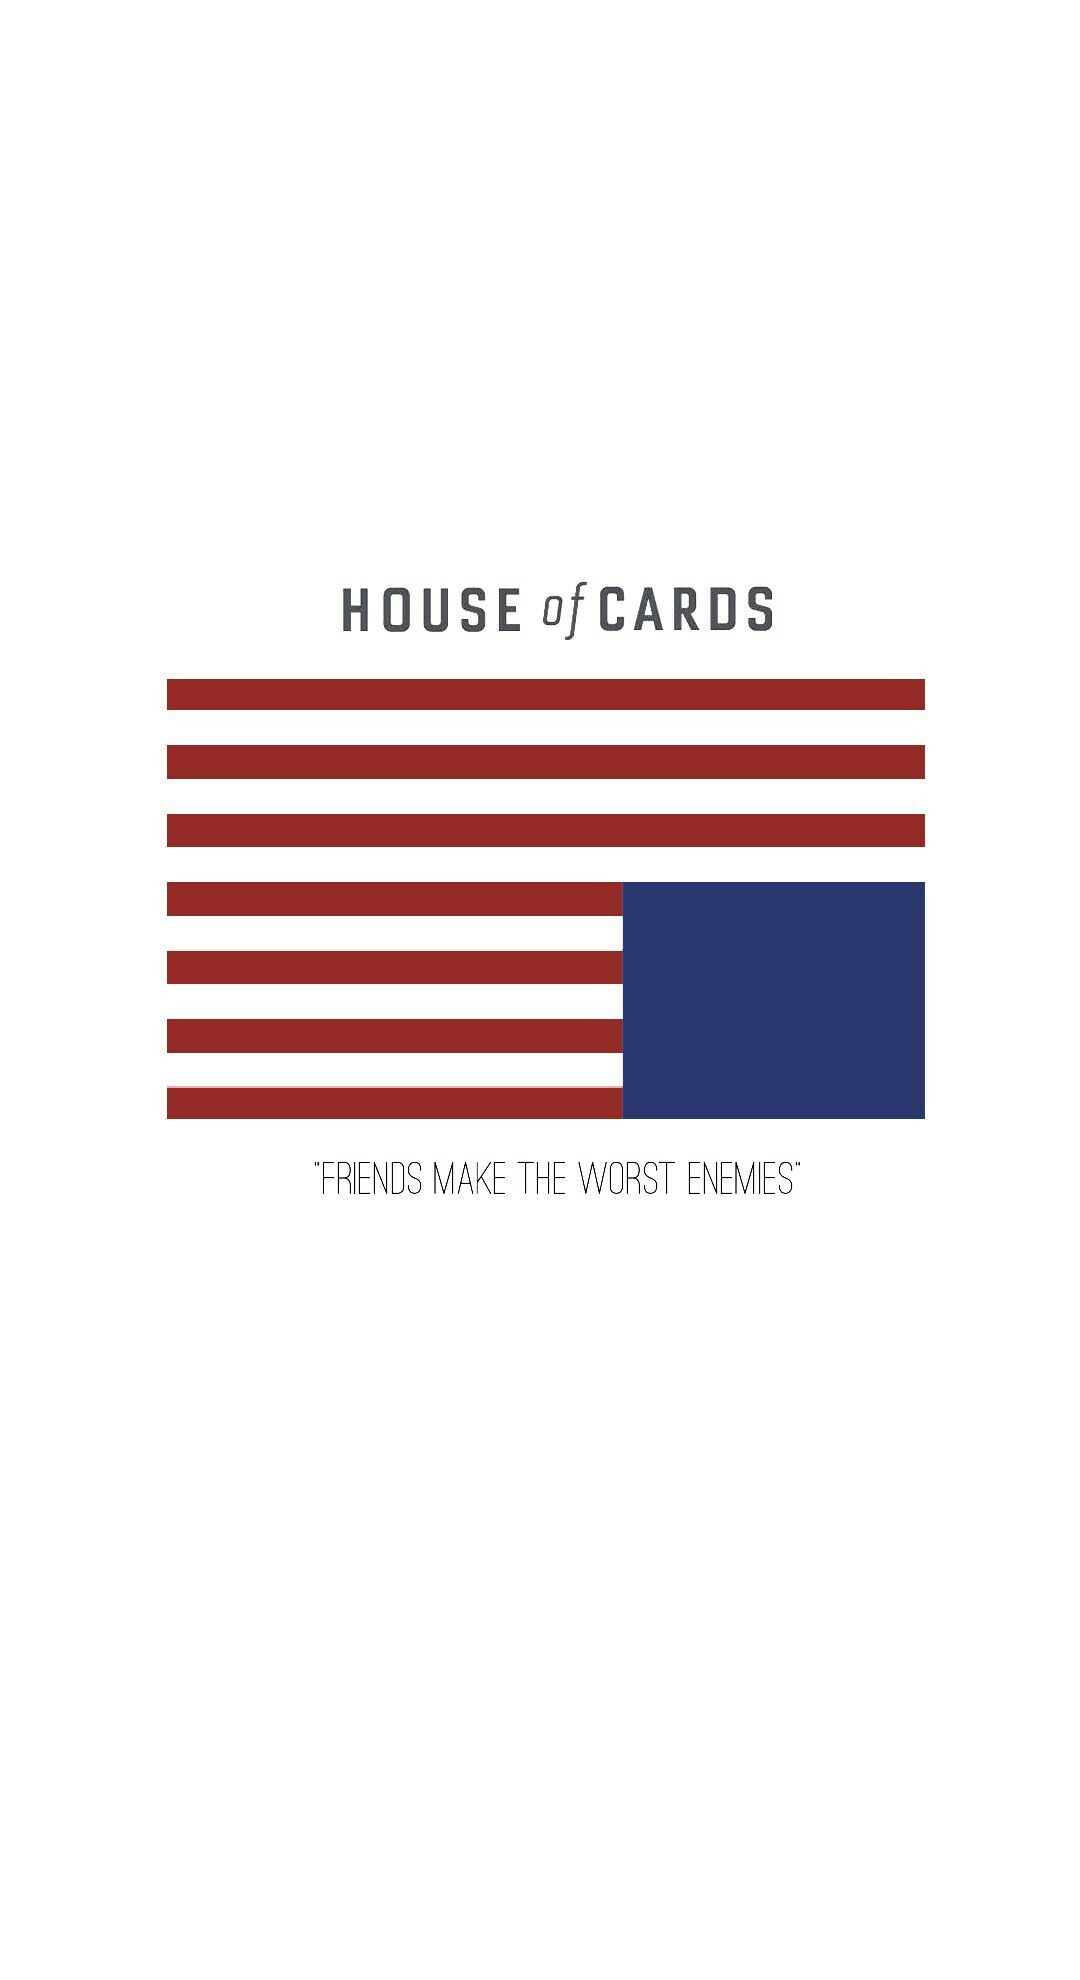 [Wallpaper] any house of cards fans? I made this wallpaper for you all …